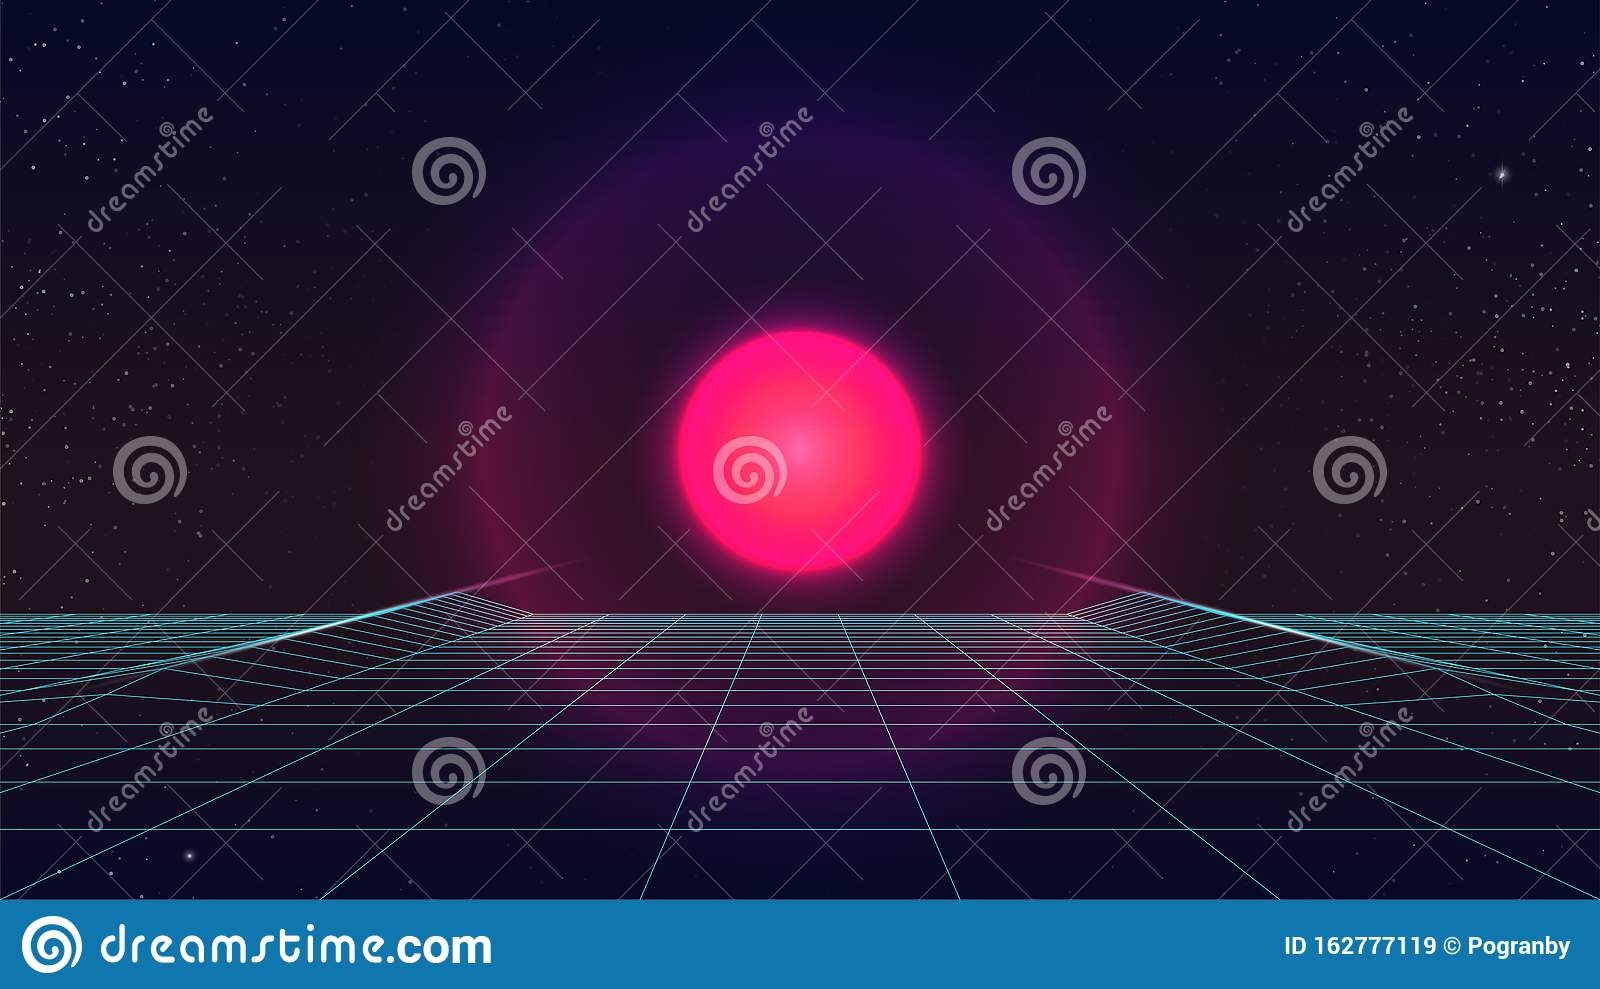 synthwave sunset background futuristic pink sun starry sky blue perspective grid neon glowing sci fi movie look s retro 162777119